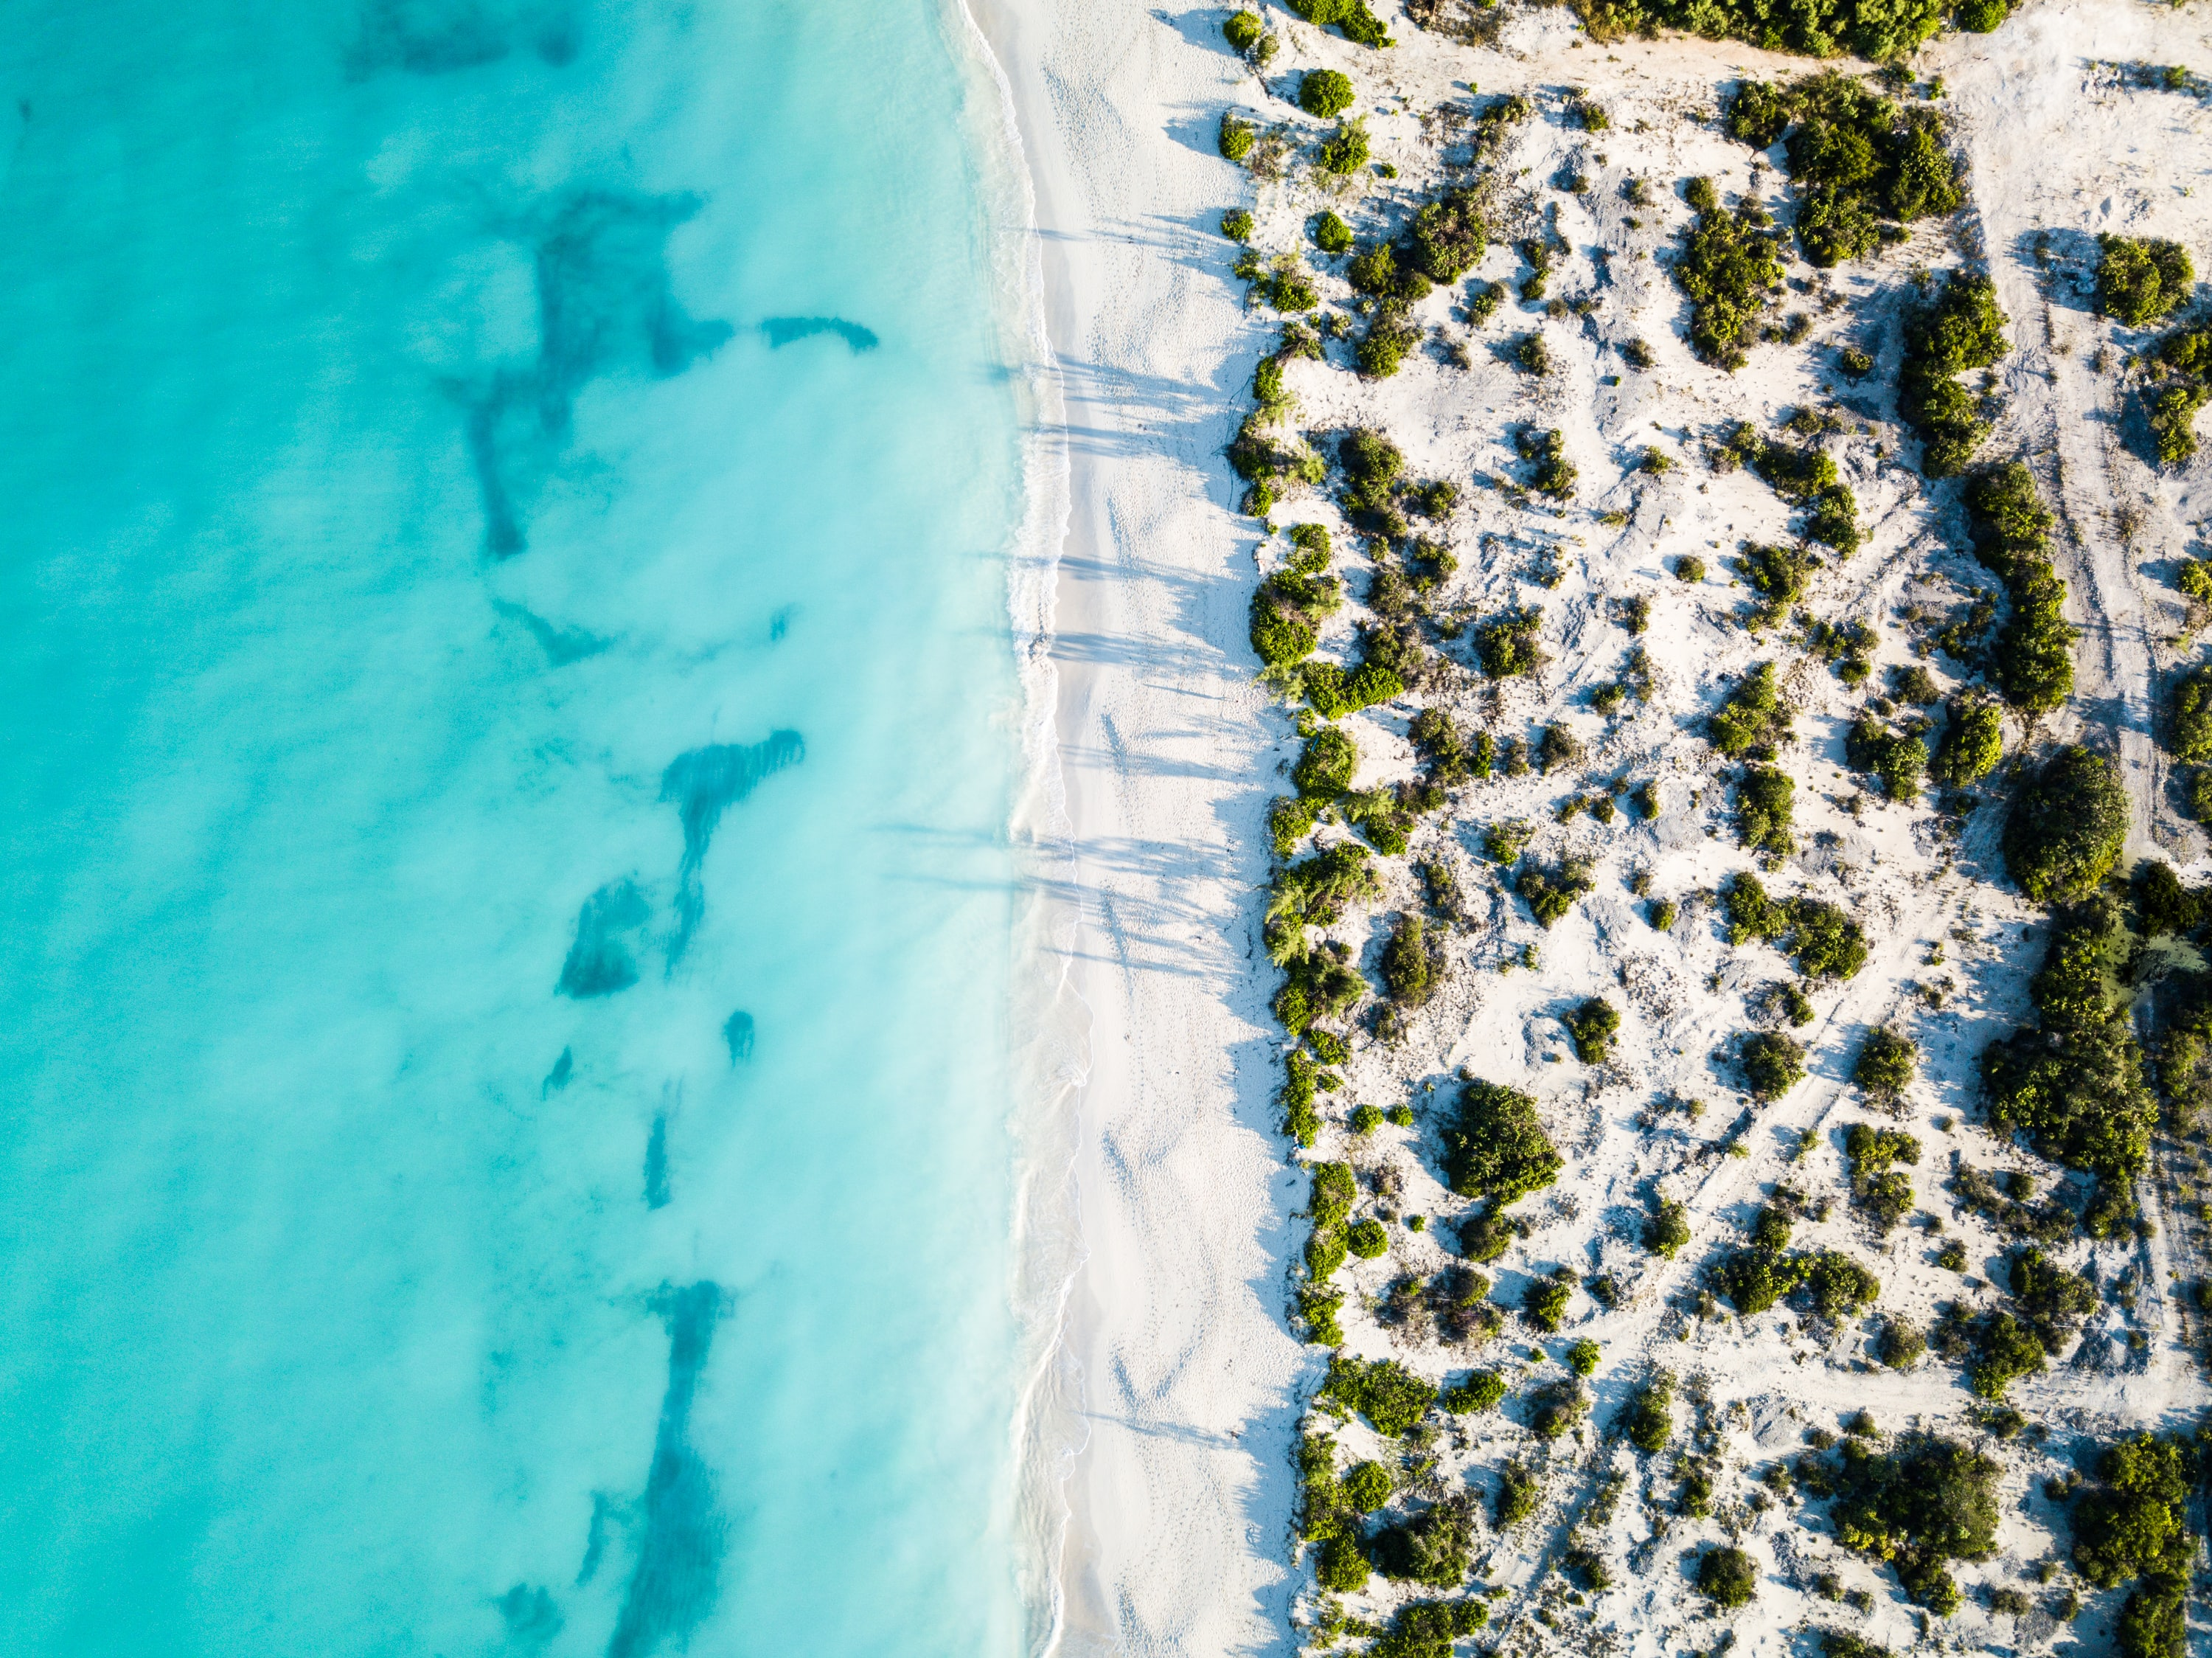 Best Local Food in Turks and Caicos